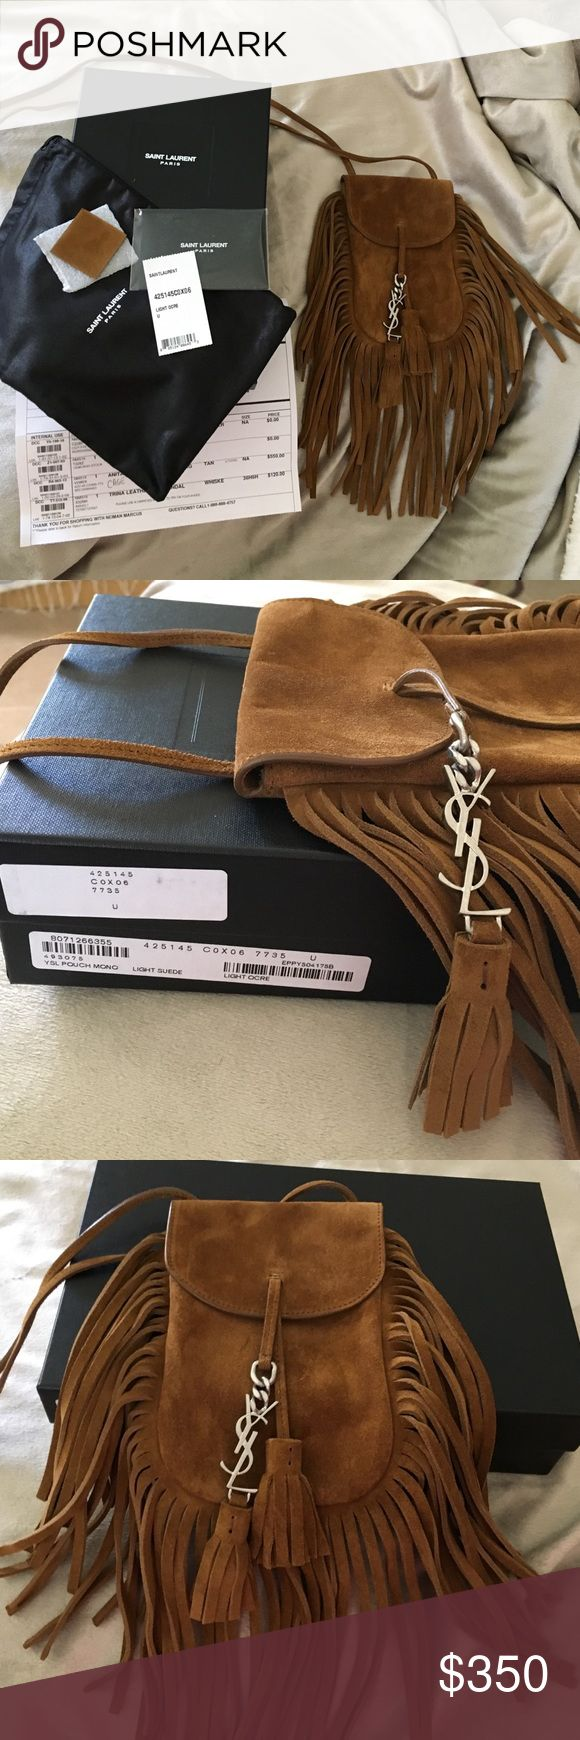 Saint Laurent Mini Anita in color light ocre This bag is so cute and screams 70s vibe. I used this bag one time but bought another fringe bag and didn't used this one. This bag fits an iPhone 6s but won't fit a 6 plus unless you don't mind not snapping the flap. This would be great for a night out or a music festival where you only need the bare minimum. Saint Laurent Bags Mini Bags